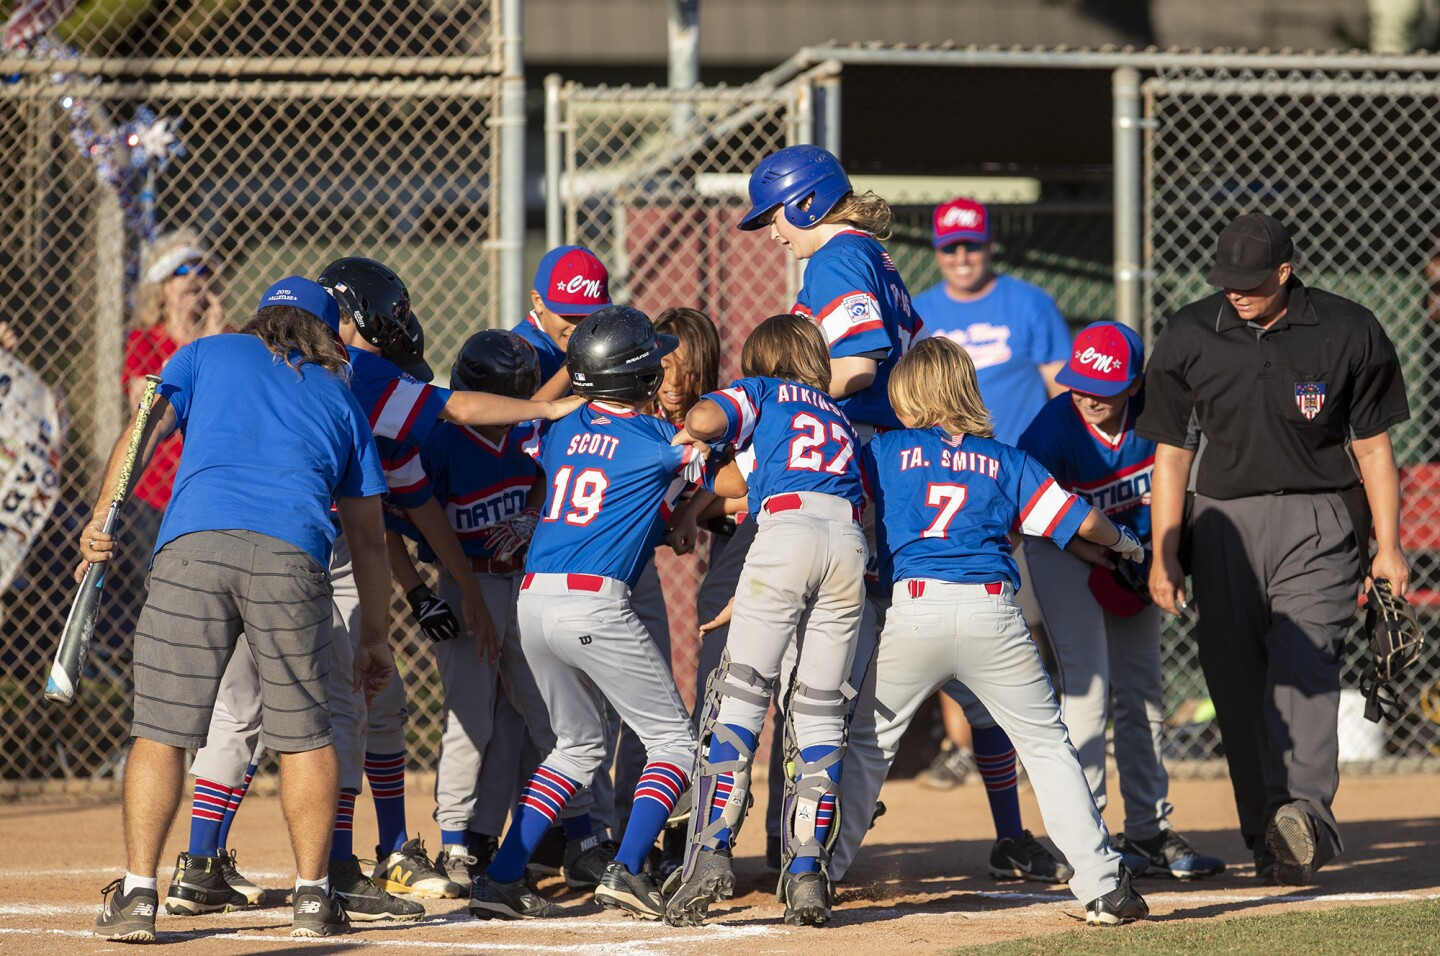 Photo Gallery: Costa Mesa Little League Mayor's Cup Game 2